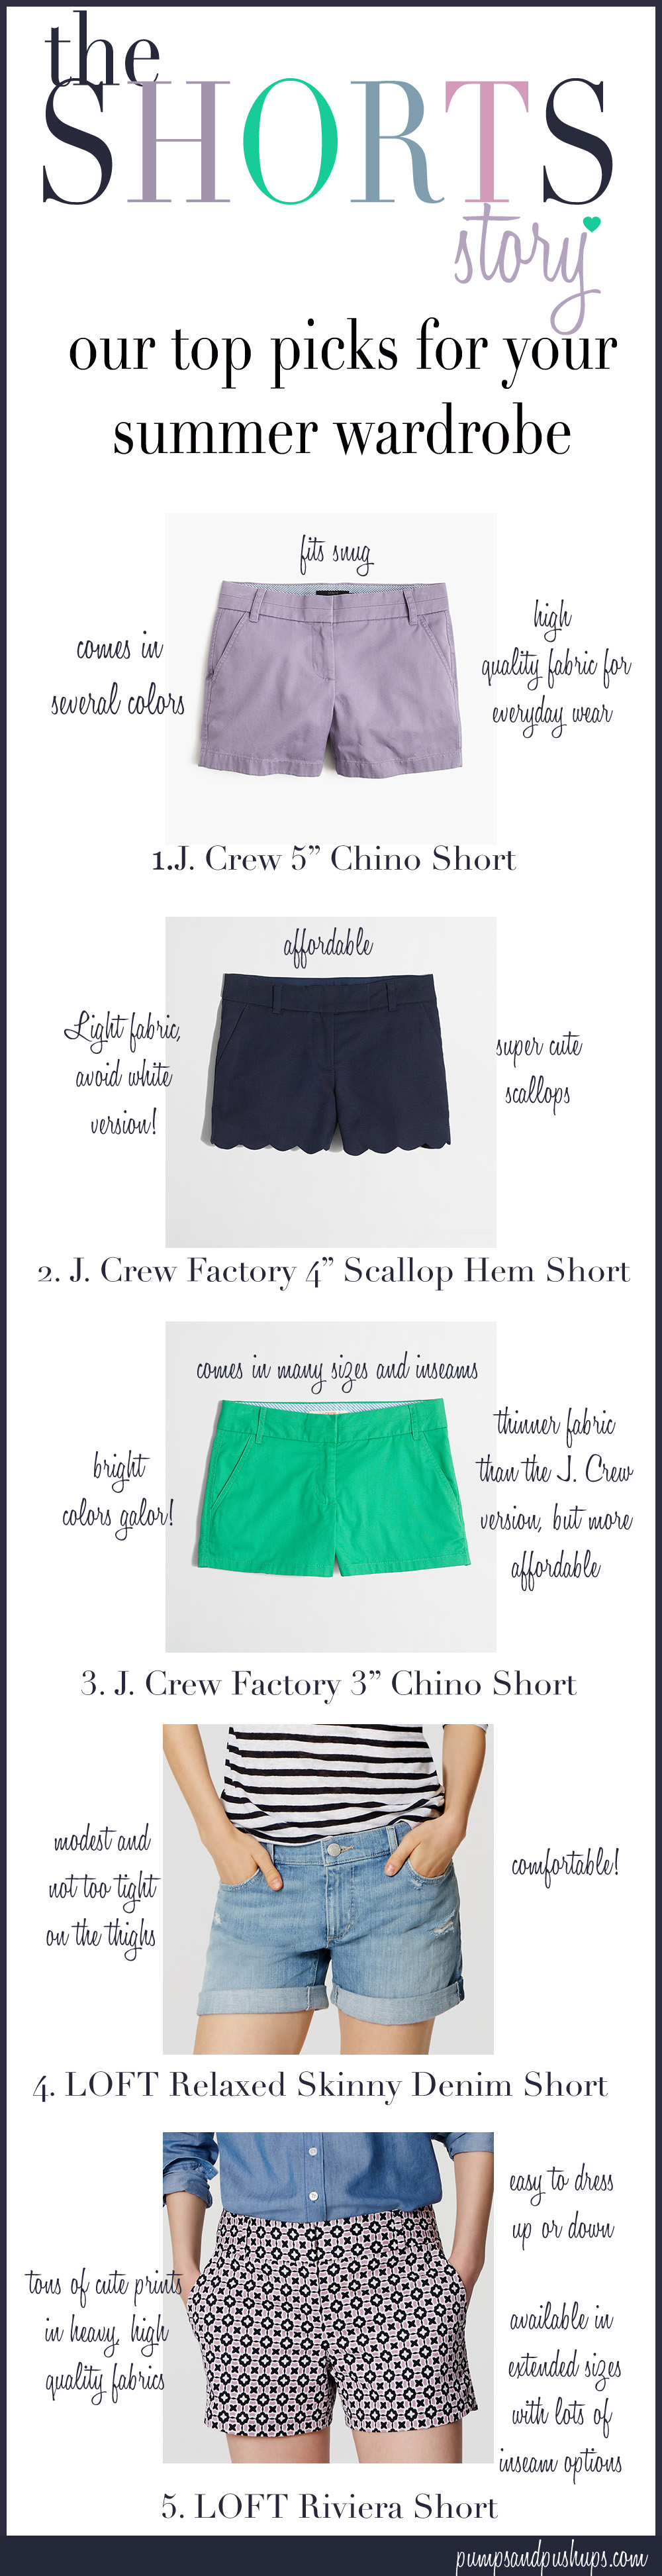 71e87520423 The Shorts Story  Our Top Picks For Your Summer Wardrobe